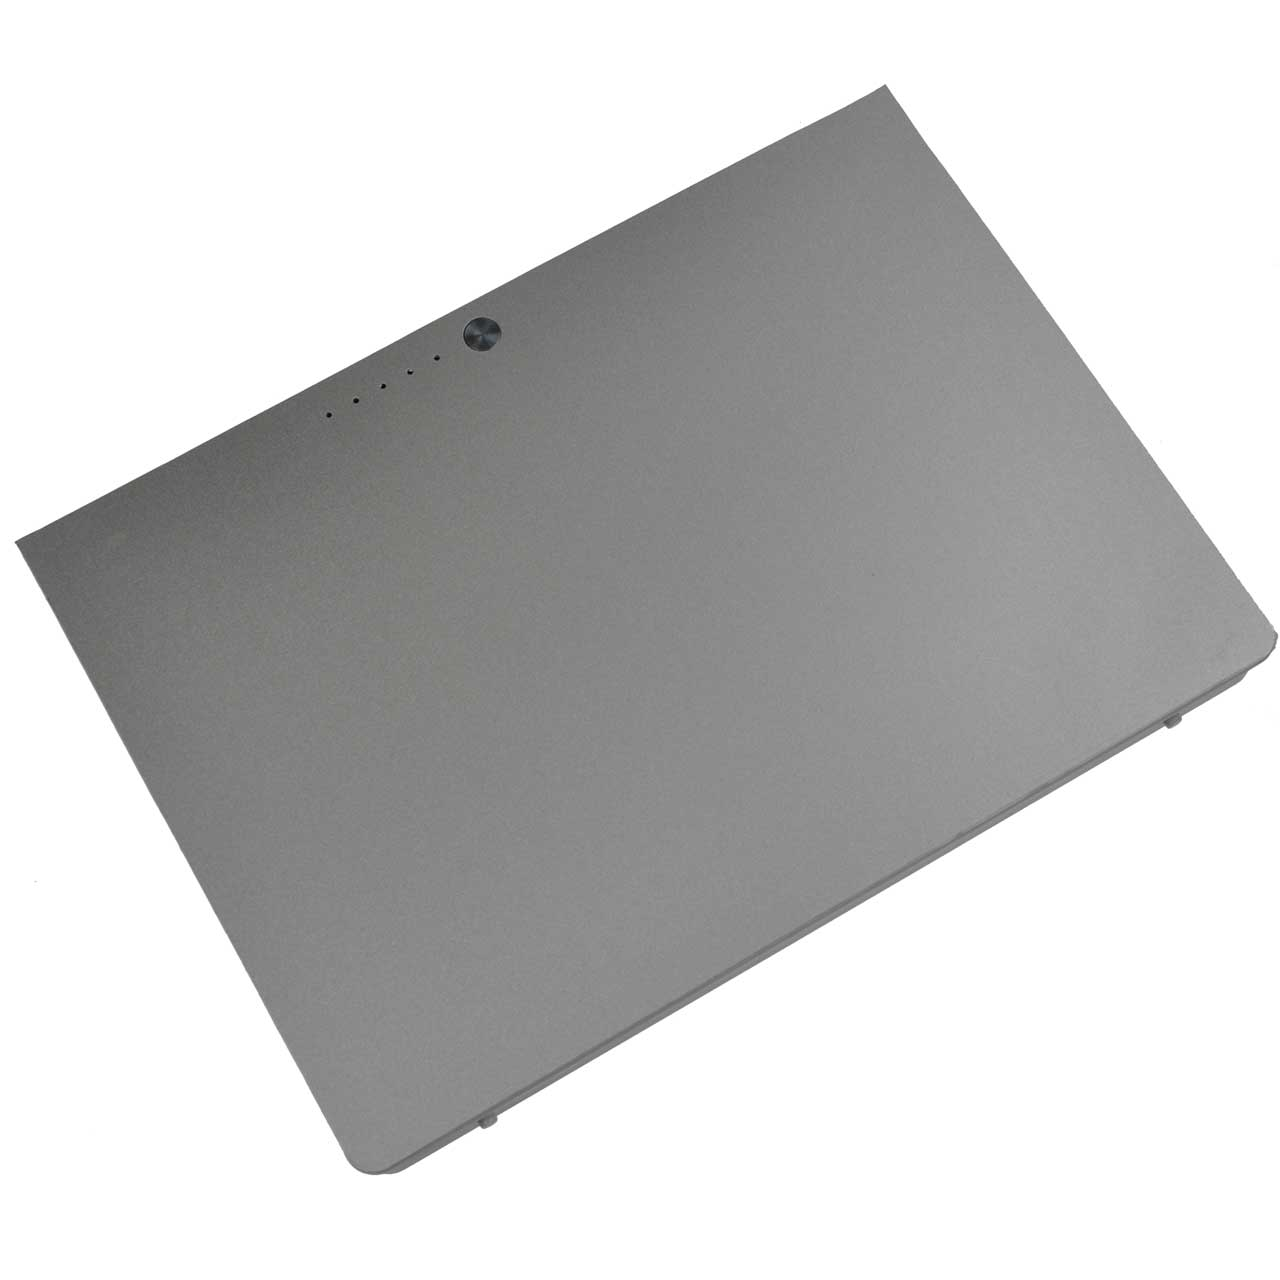 iFixit MacBook Pro 17 Non-Unibody Model Replacement Battery - резервна батерия за MacBook Pro 17